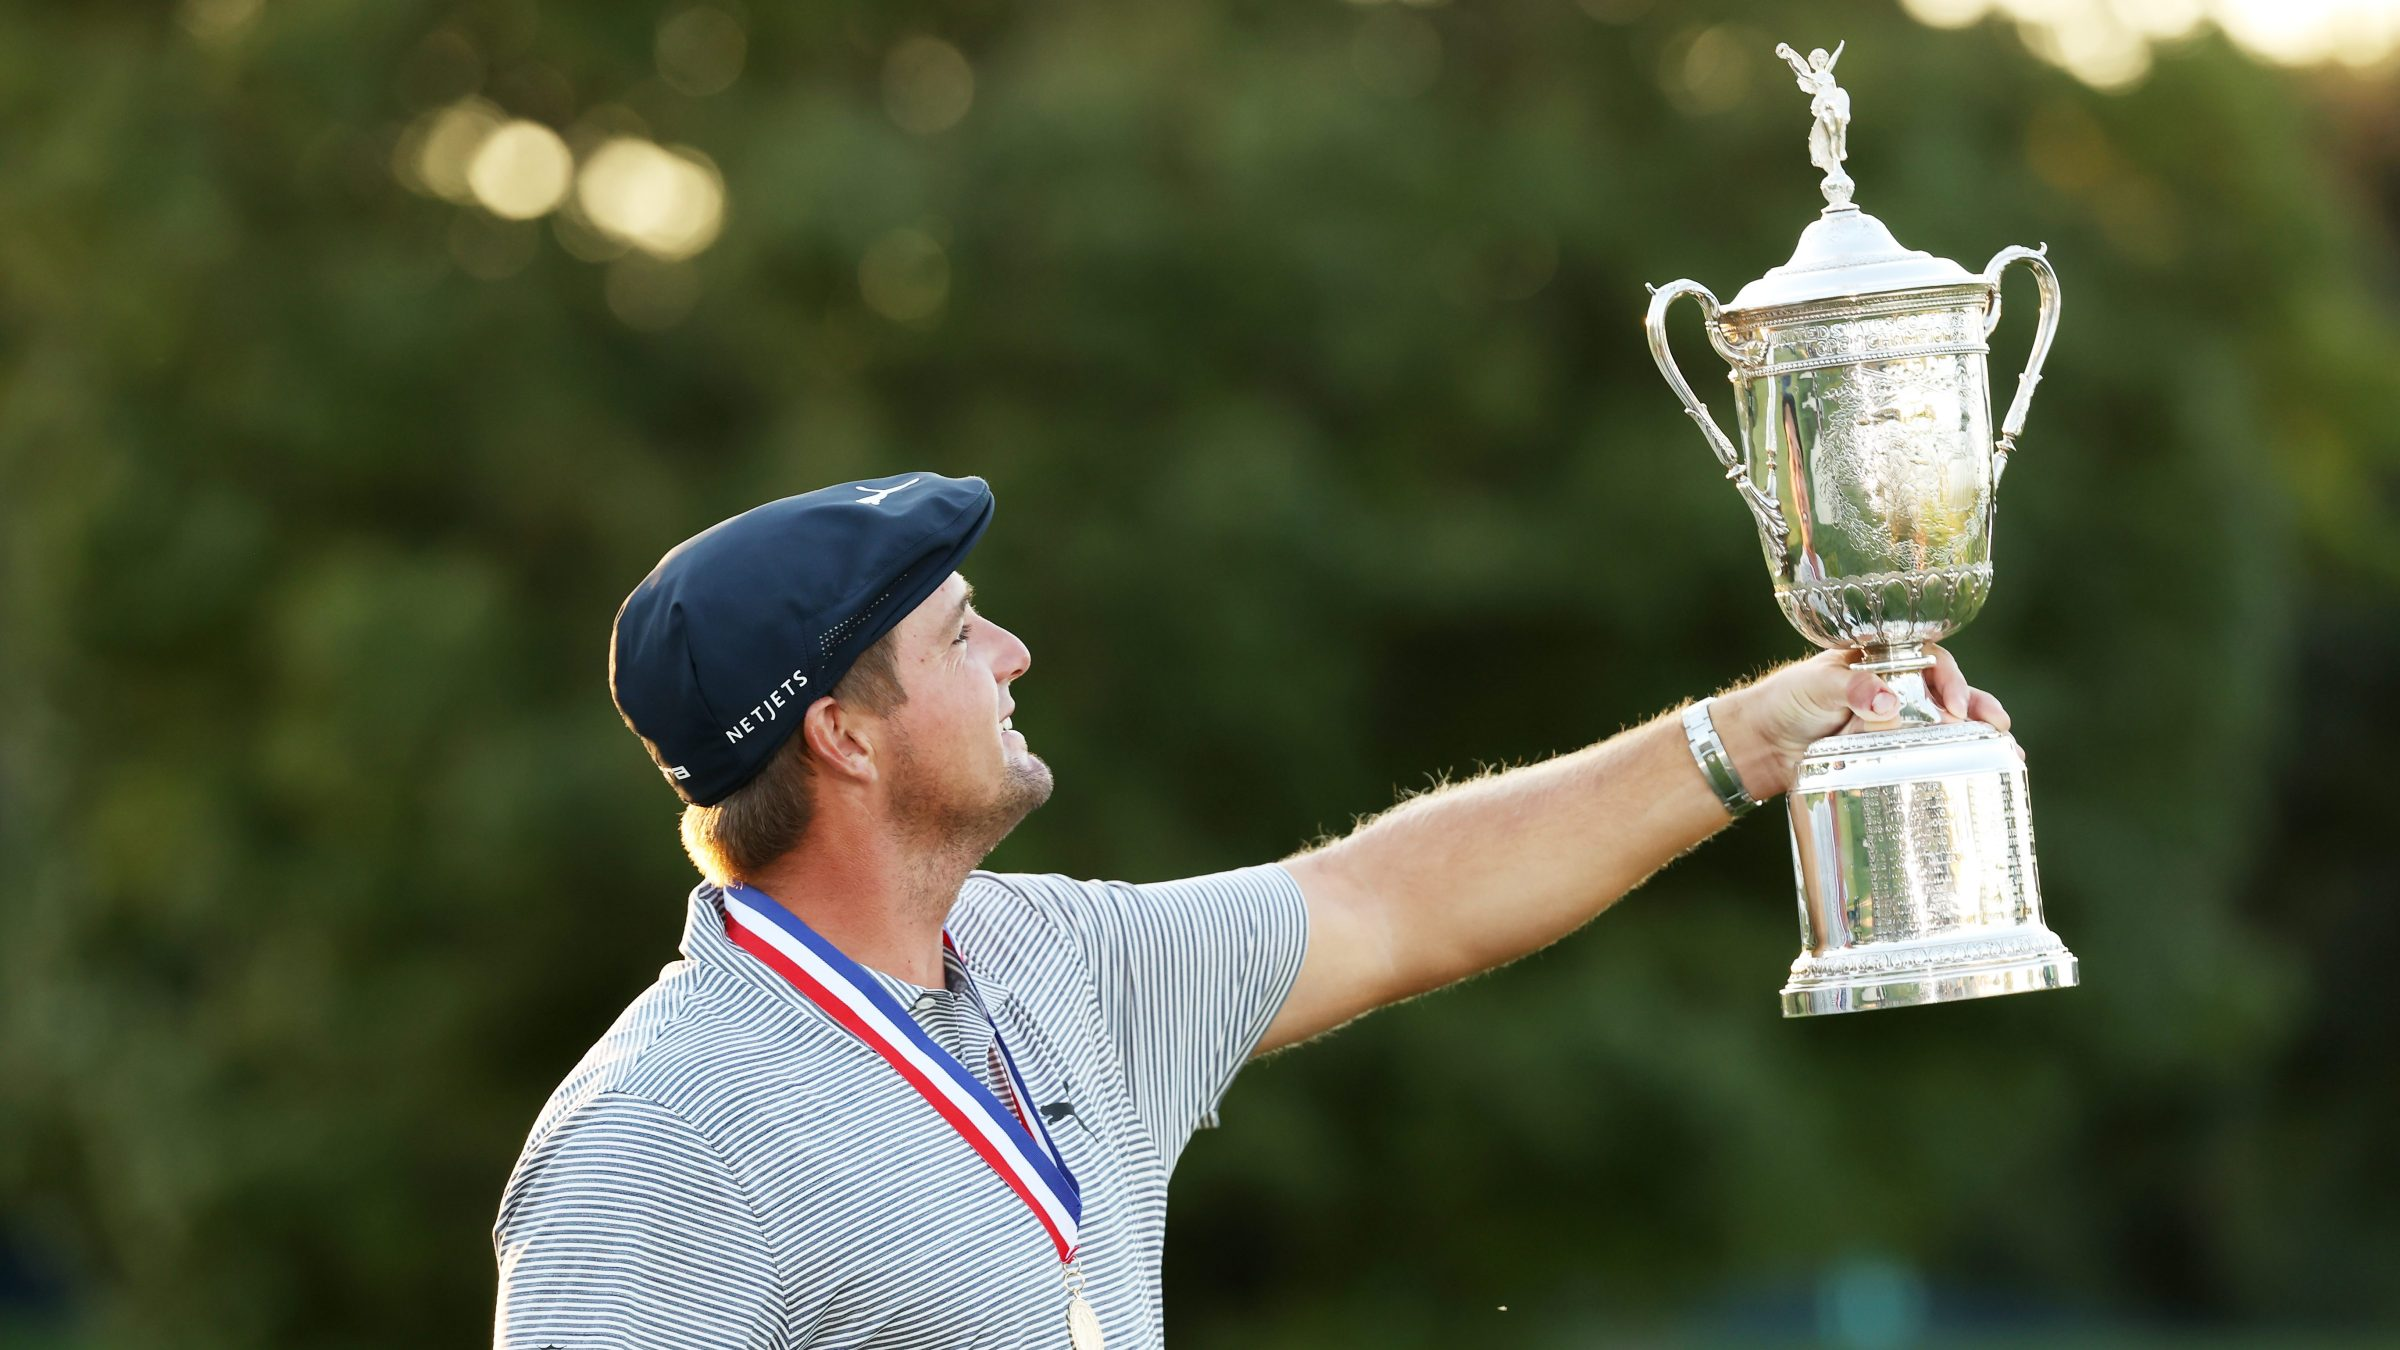 Bryson DeChambeau admires the U.S. Open Championship Trophy after winning the 2020 U.S. Open at Winged Foot.